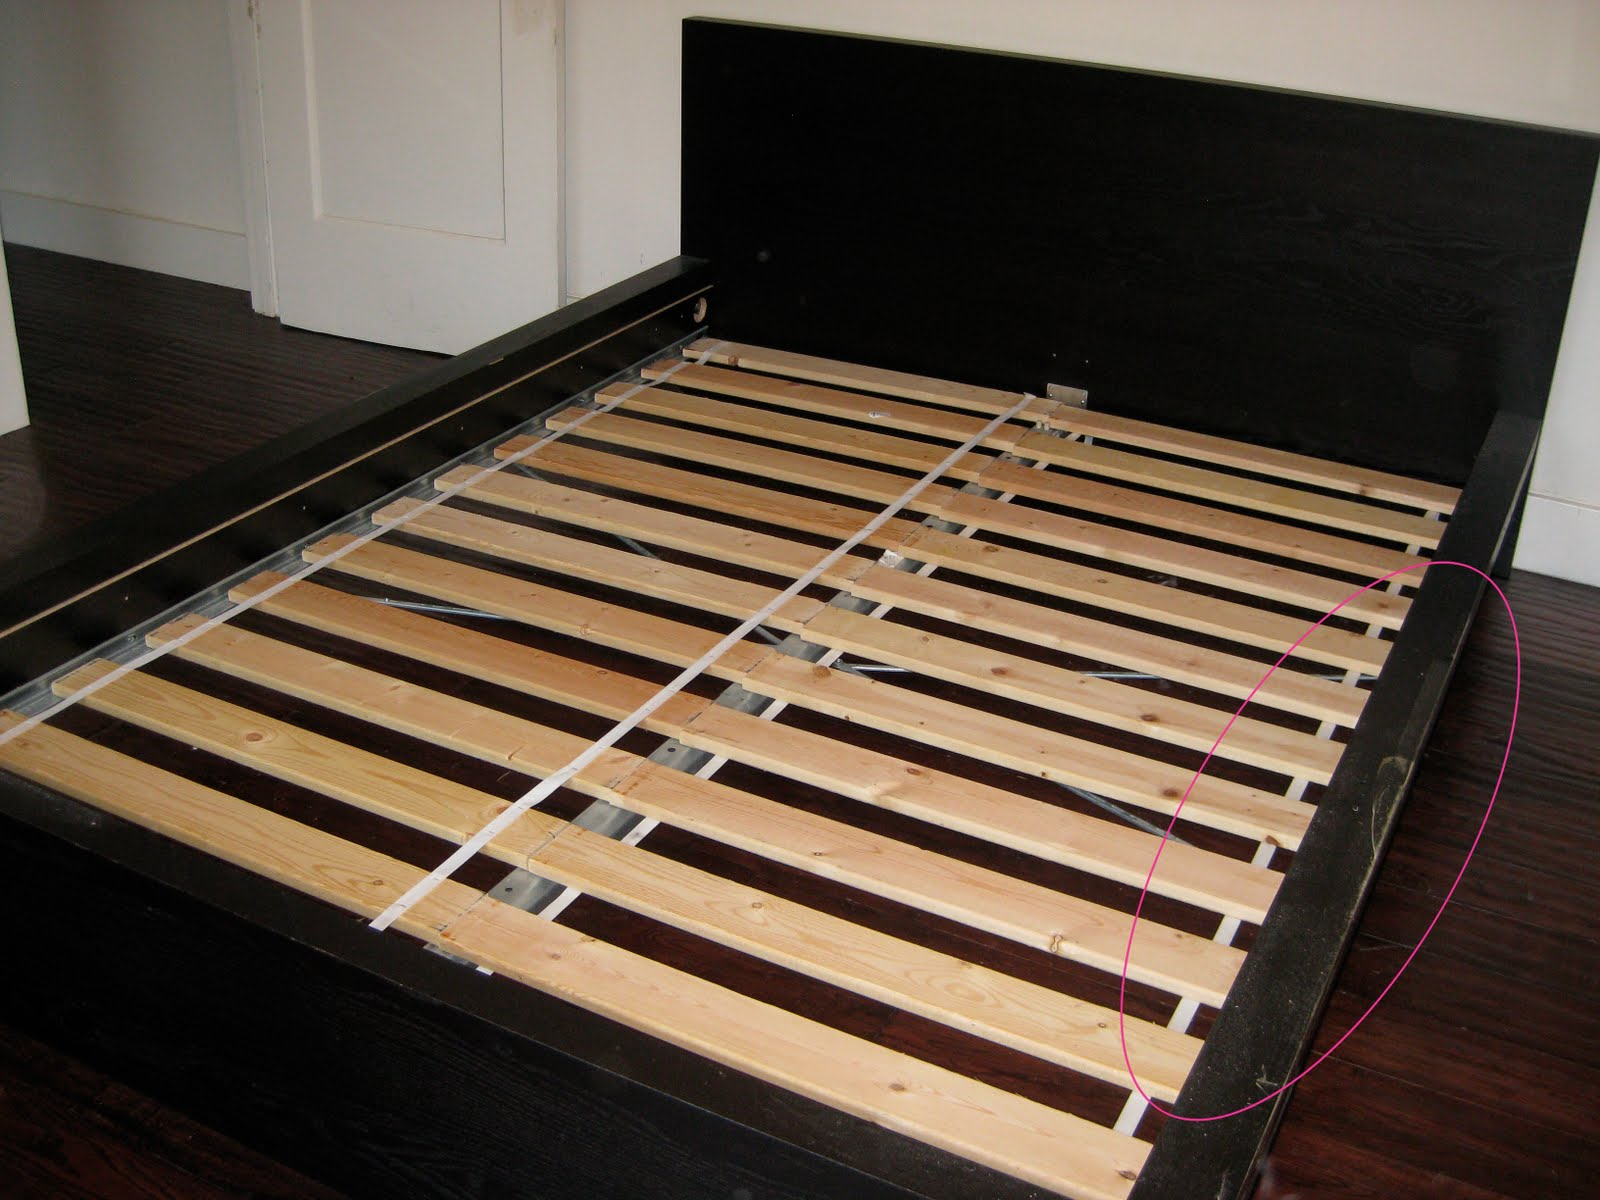 belongings4sale: Ikea MALM queen-sized bed frame $50